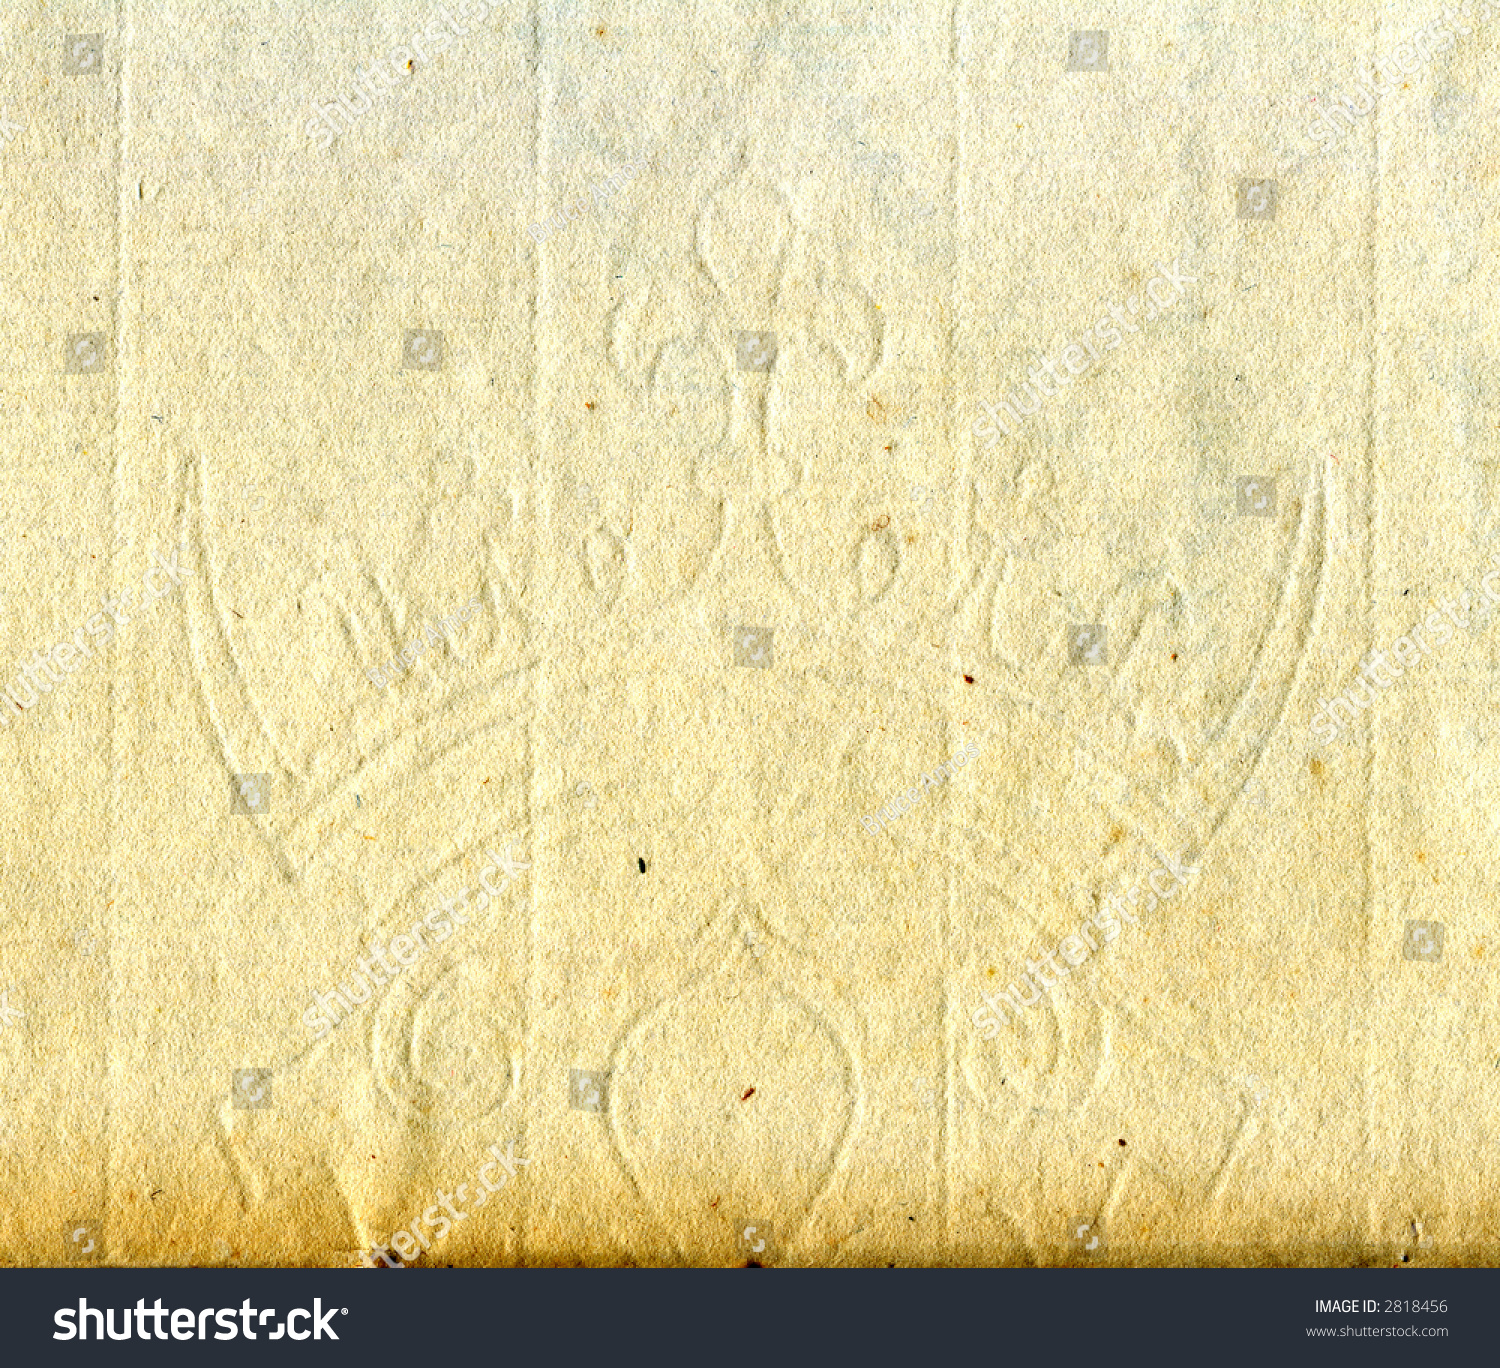 Old Grunge Paper With Royal Watermark Stock Photo 2818456 : Shutterstock